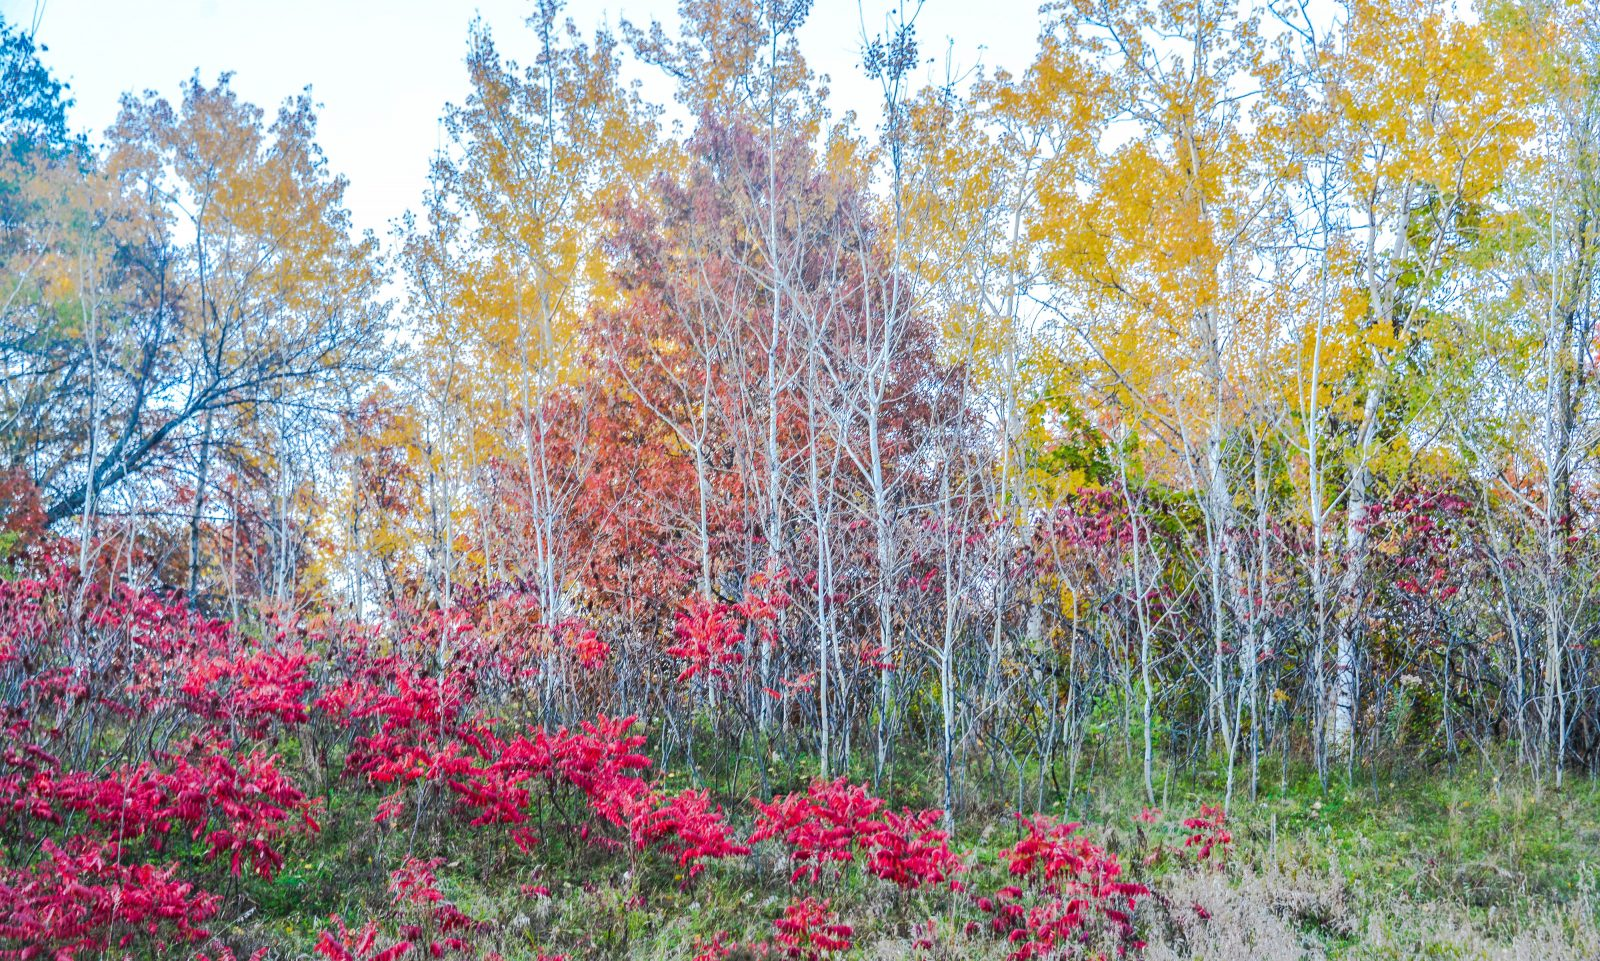 The Colors of Fall in Minnesota